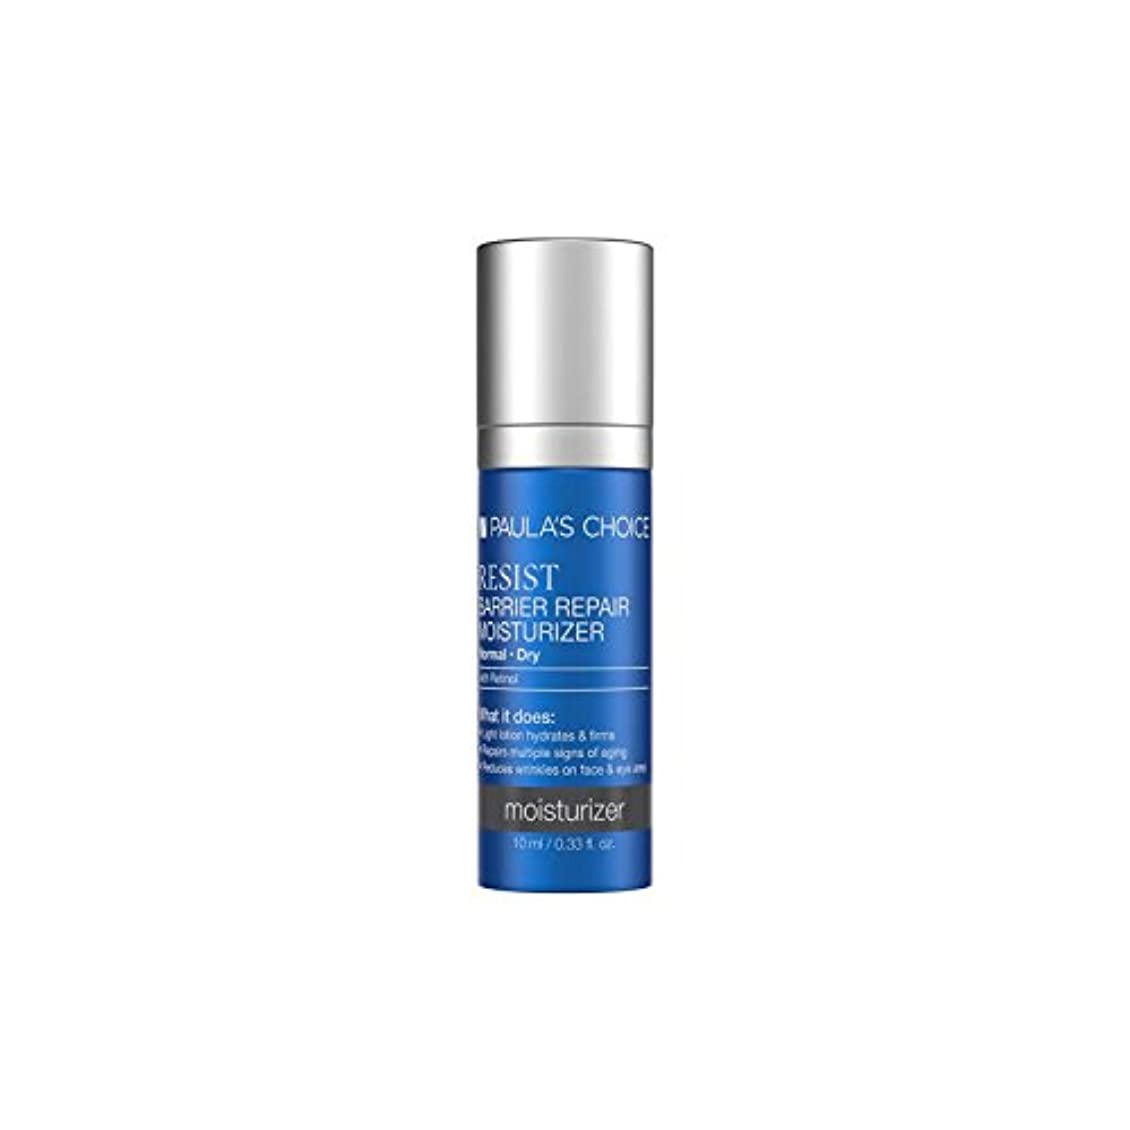 日没復活シニスPaula's Choice Resist Barrier Repair Moisturizer With Retinol - Trial Size (10ml) (Pack of 6) - トライアルサイズ(10ミリリットル...